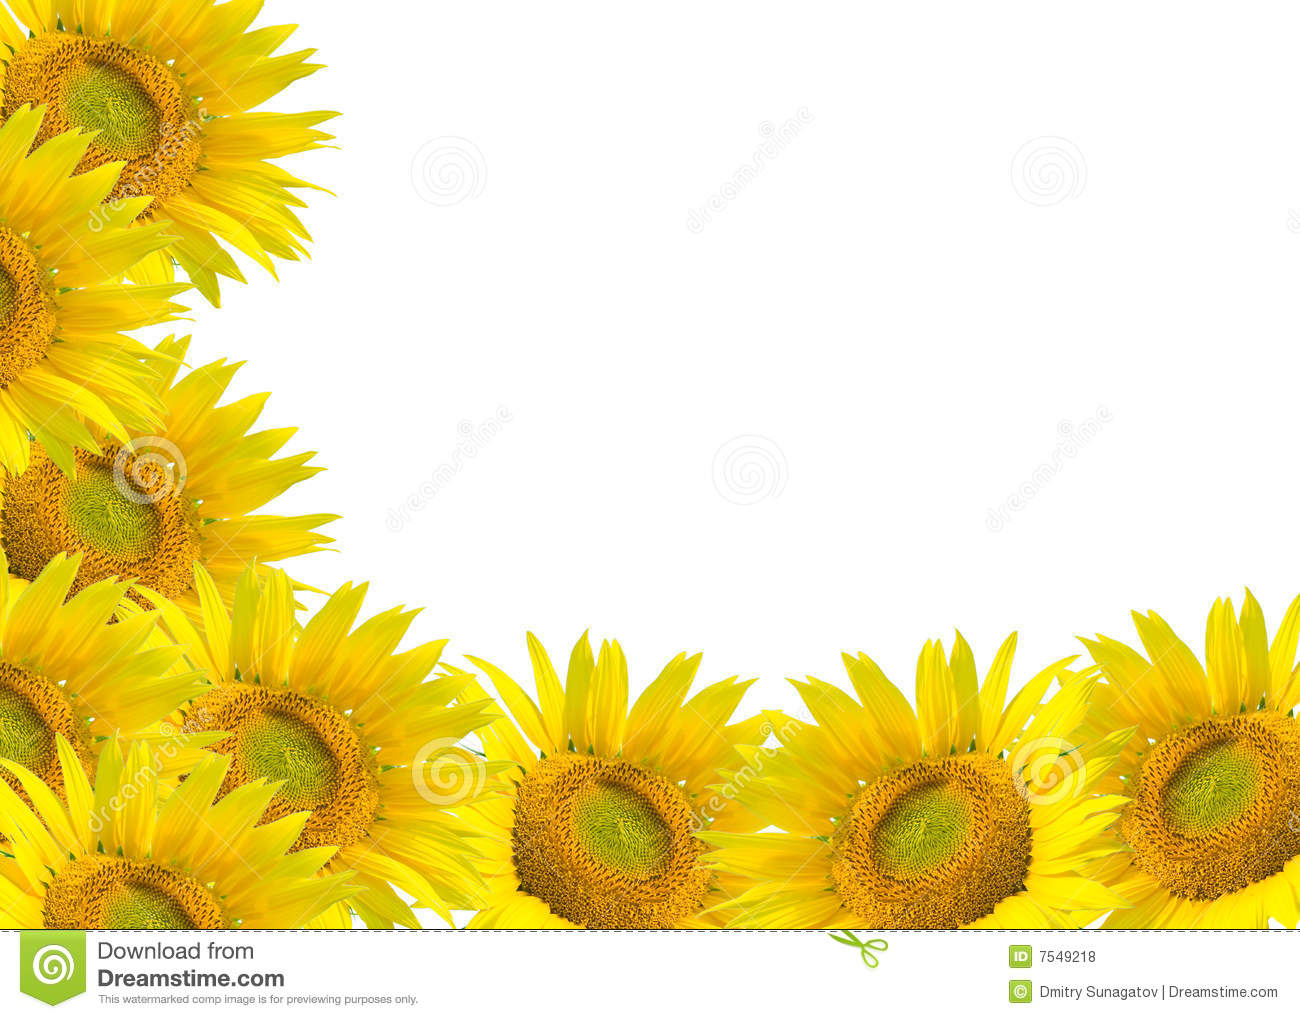 Rustic Sunflower Wallpaper